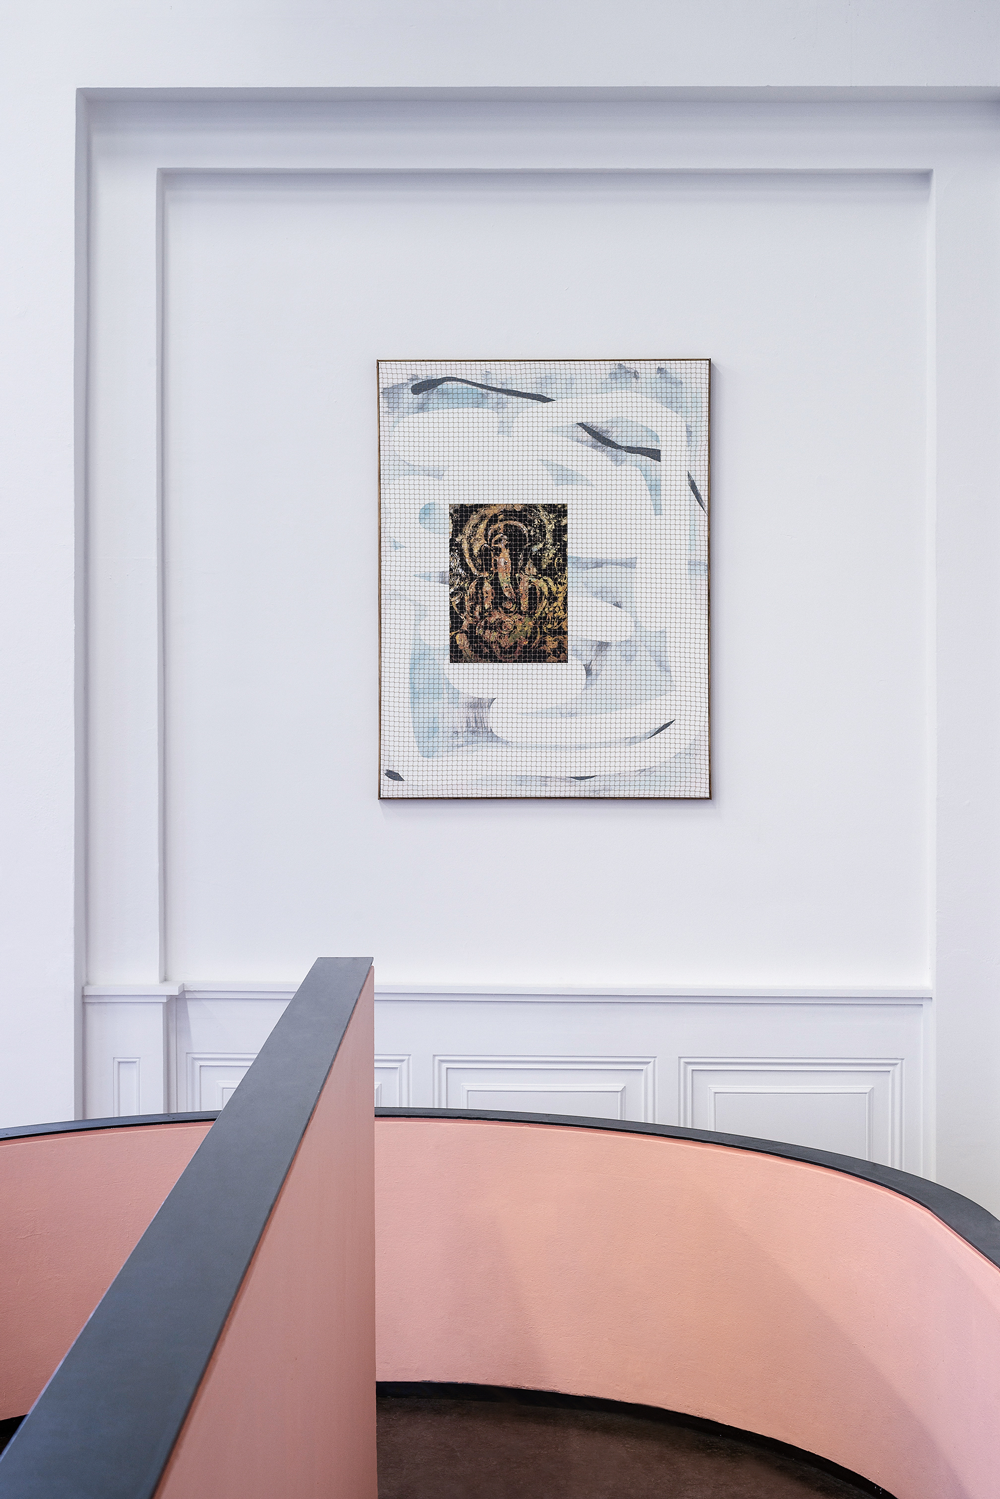 Installation view, '60 million Americans can't be wrong' at Kunstverein Harburger Bahnhof: Christopher Kulendran Thomas From the ongoing work When Platitudes Become Form, 2016 Acrylic on canvas, wooden frame, netting and 'Lord Ganesh' (2011) by Dennis Muthuthanthri Image: Michael Pfisterer